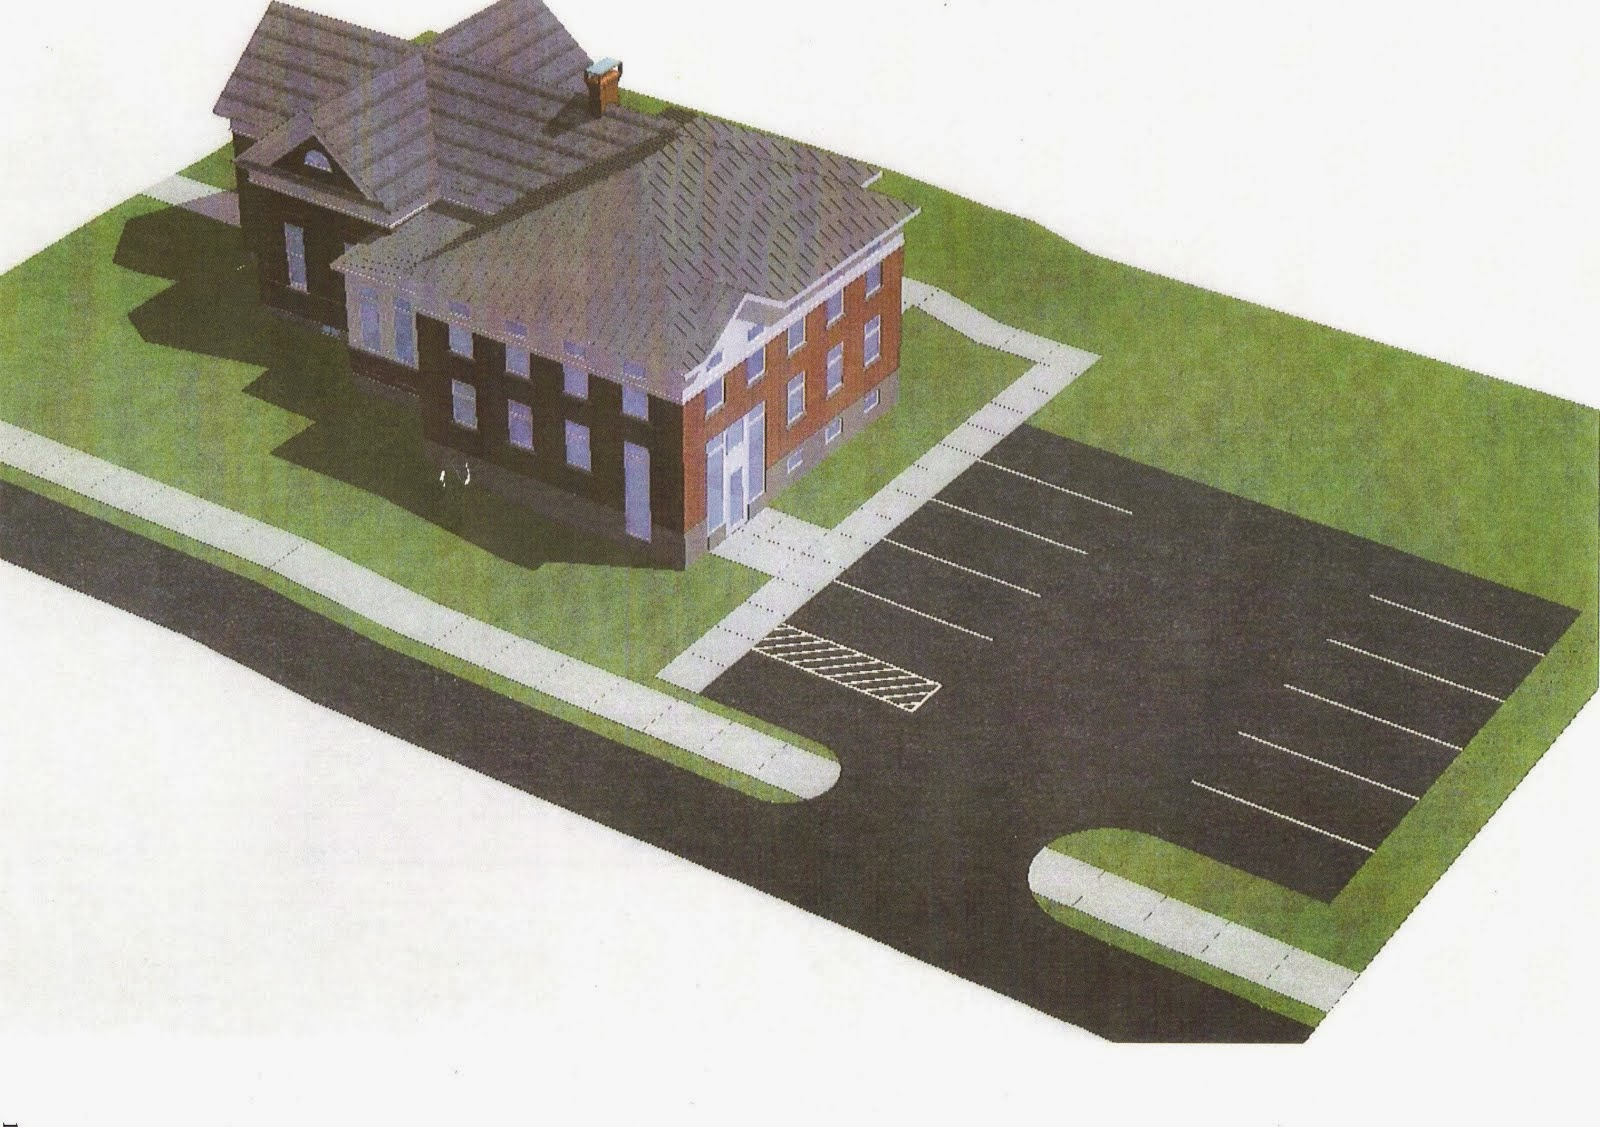 Expansion Plans showing rear entrance and parking lot.